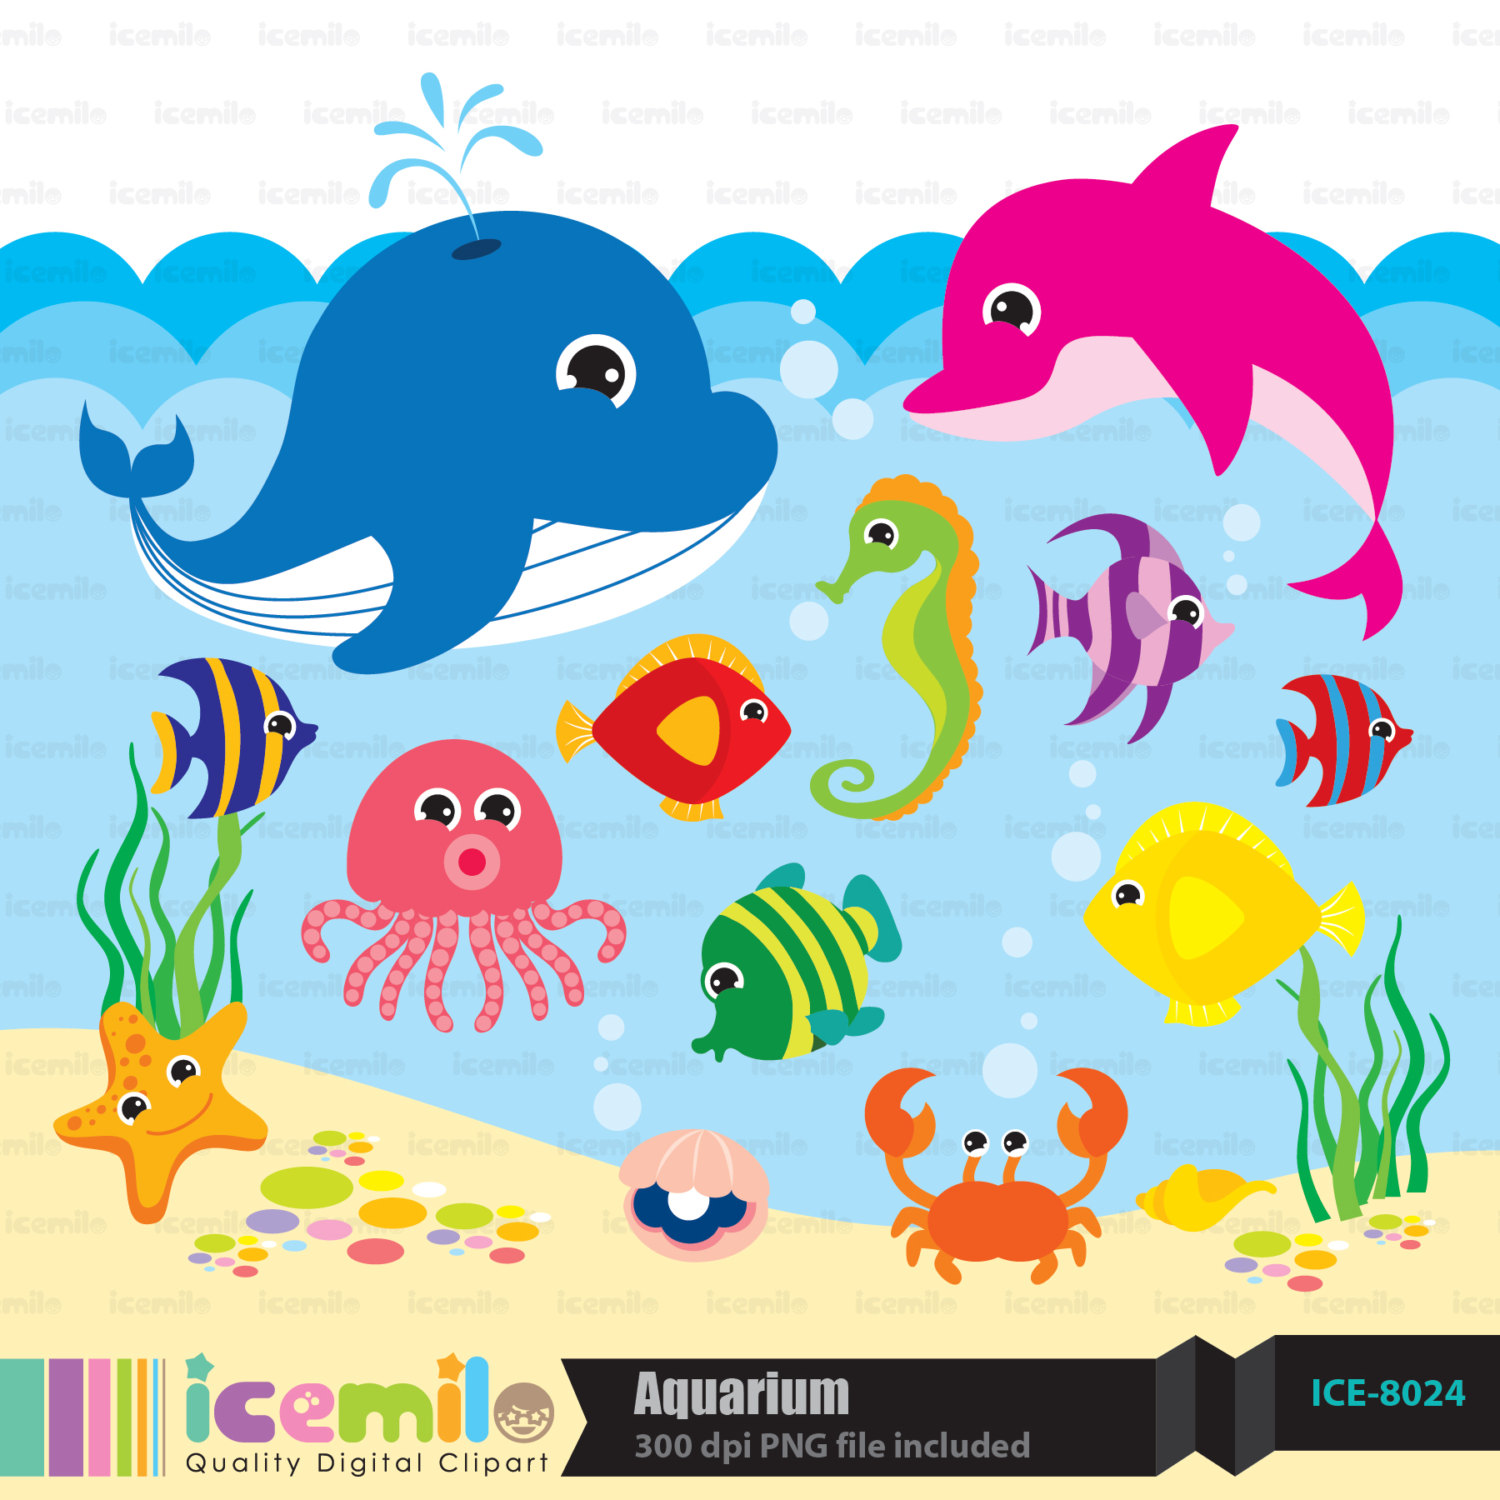 Aquarium clipart Aquarium Clipart of aquarium collection